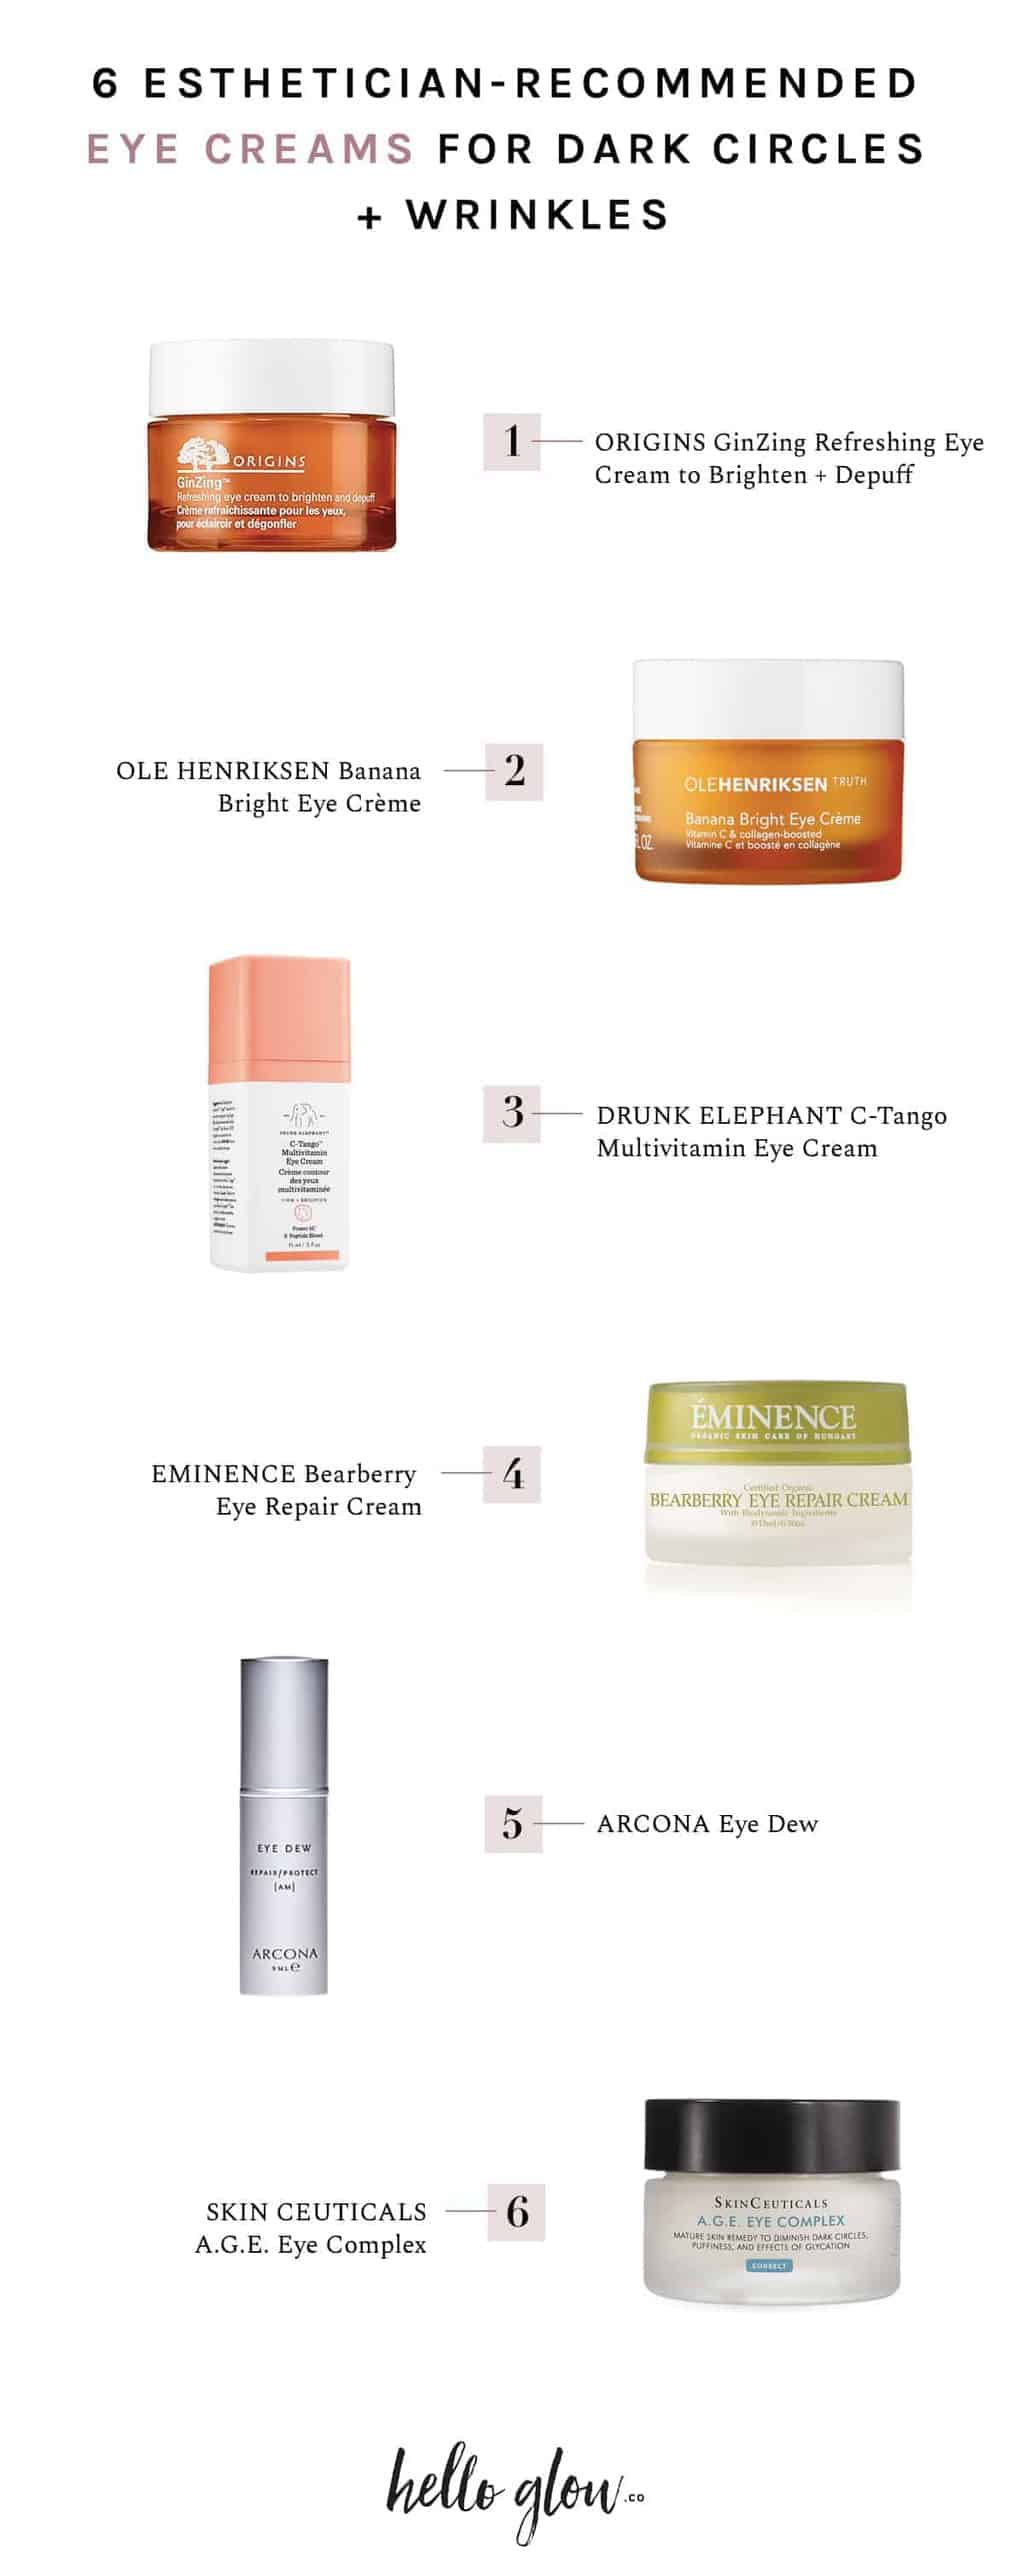 Eye Creams for Dark Circles & Wrinkles